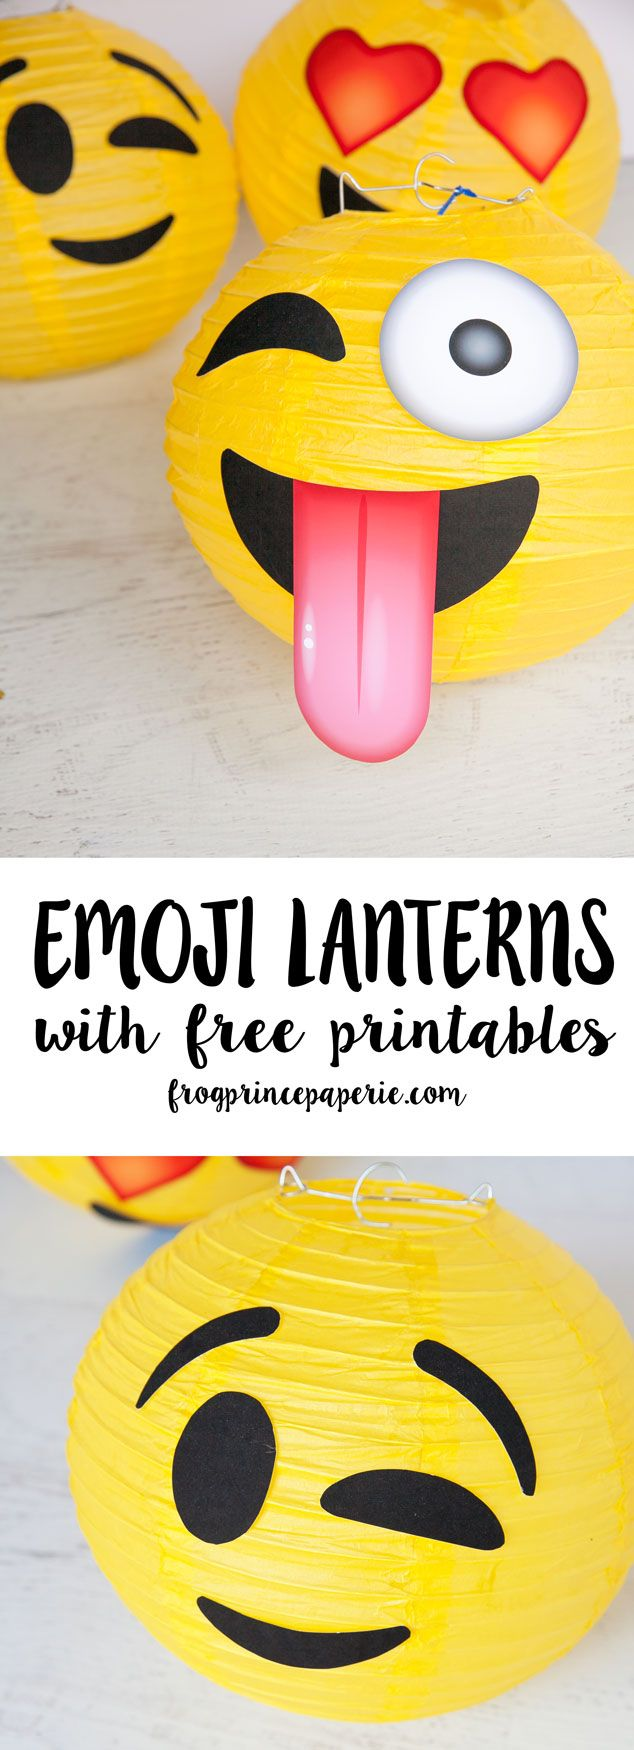 Make Emoji party lanterns in less than 5 minutes to decorate your birthday party! We'll even throw in the free printables to make them!